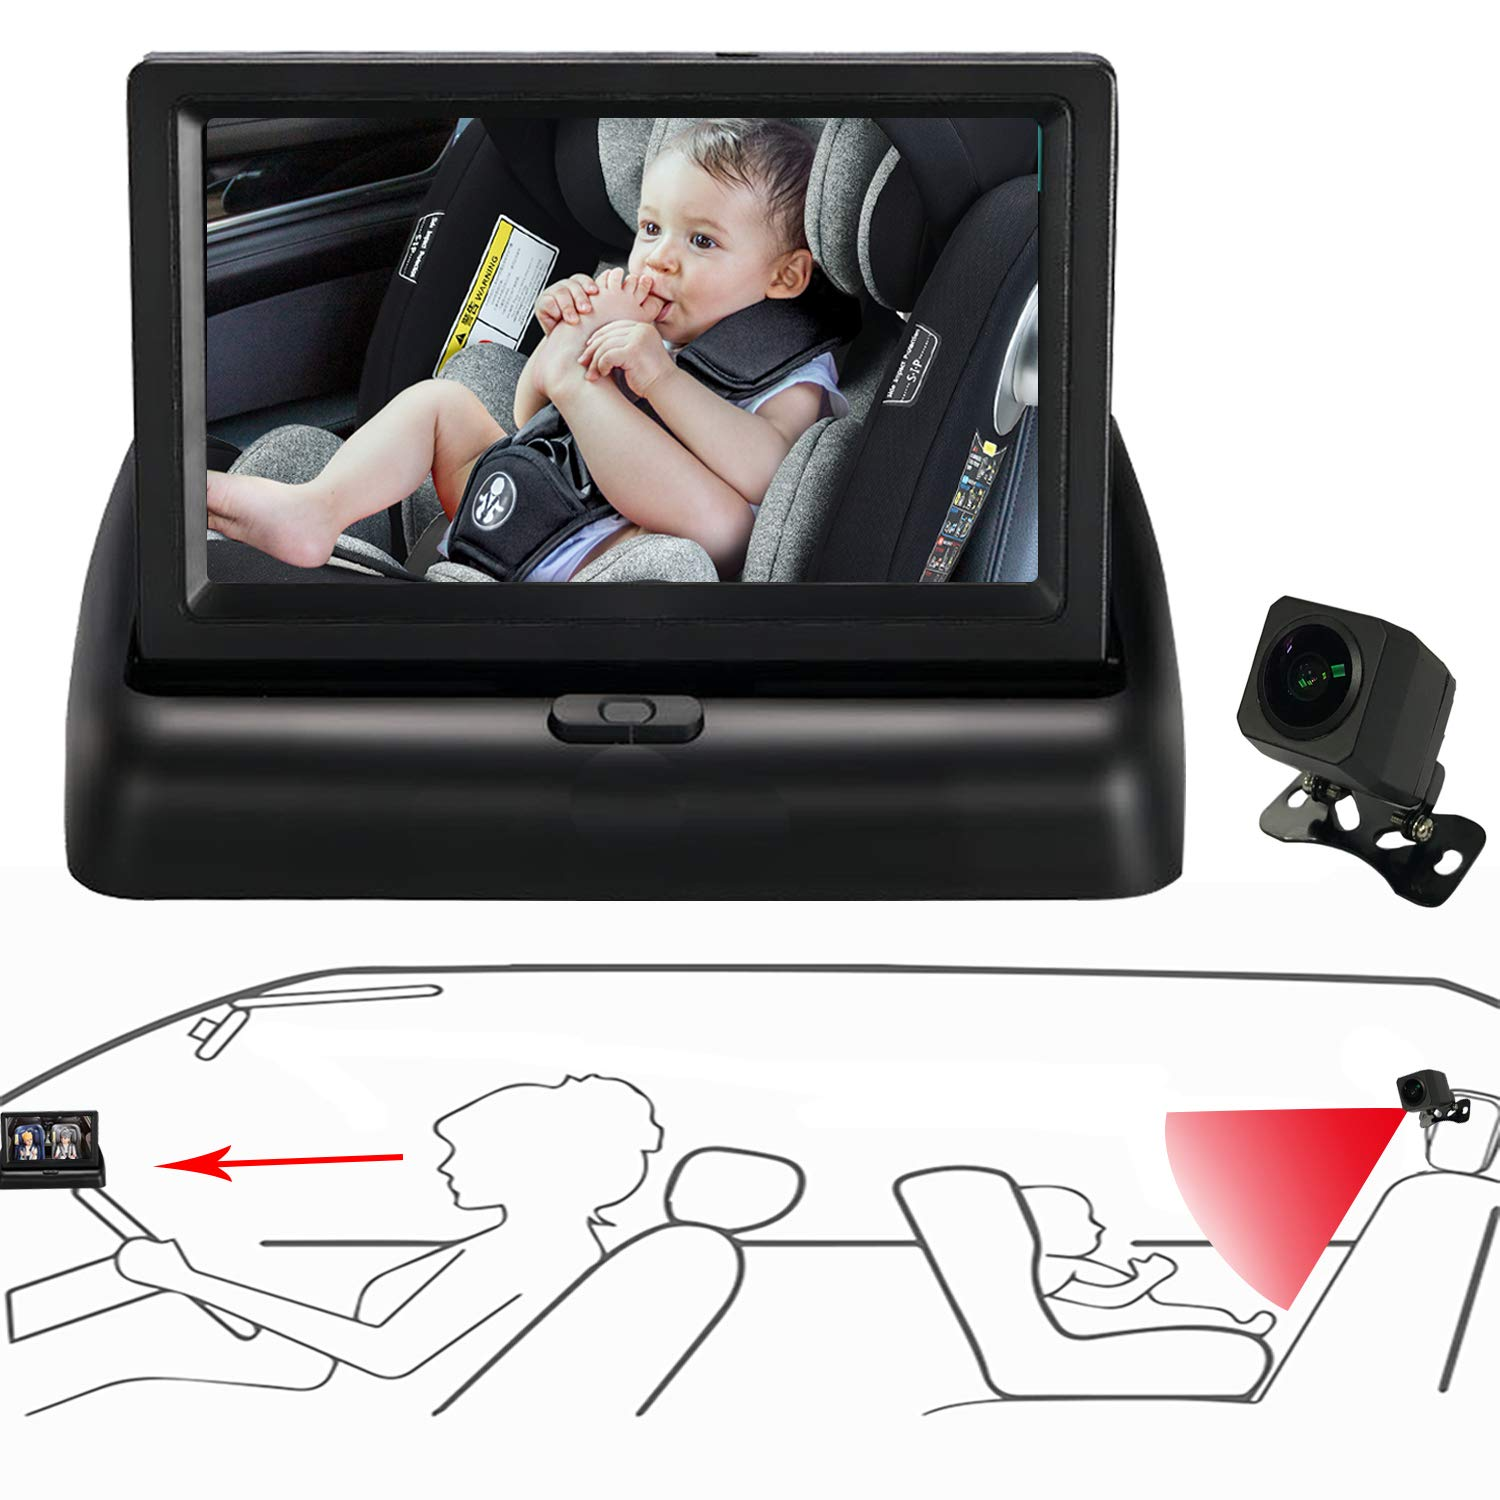 Itomoro Baby Car Mirror, View Infant in Rear Facing Seat with Wide Crystal Clear View,Night Vision,Camera Aimed at Baby-Easily to Observe The Baby's Every Move